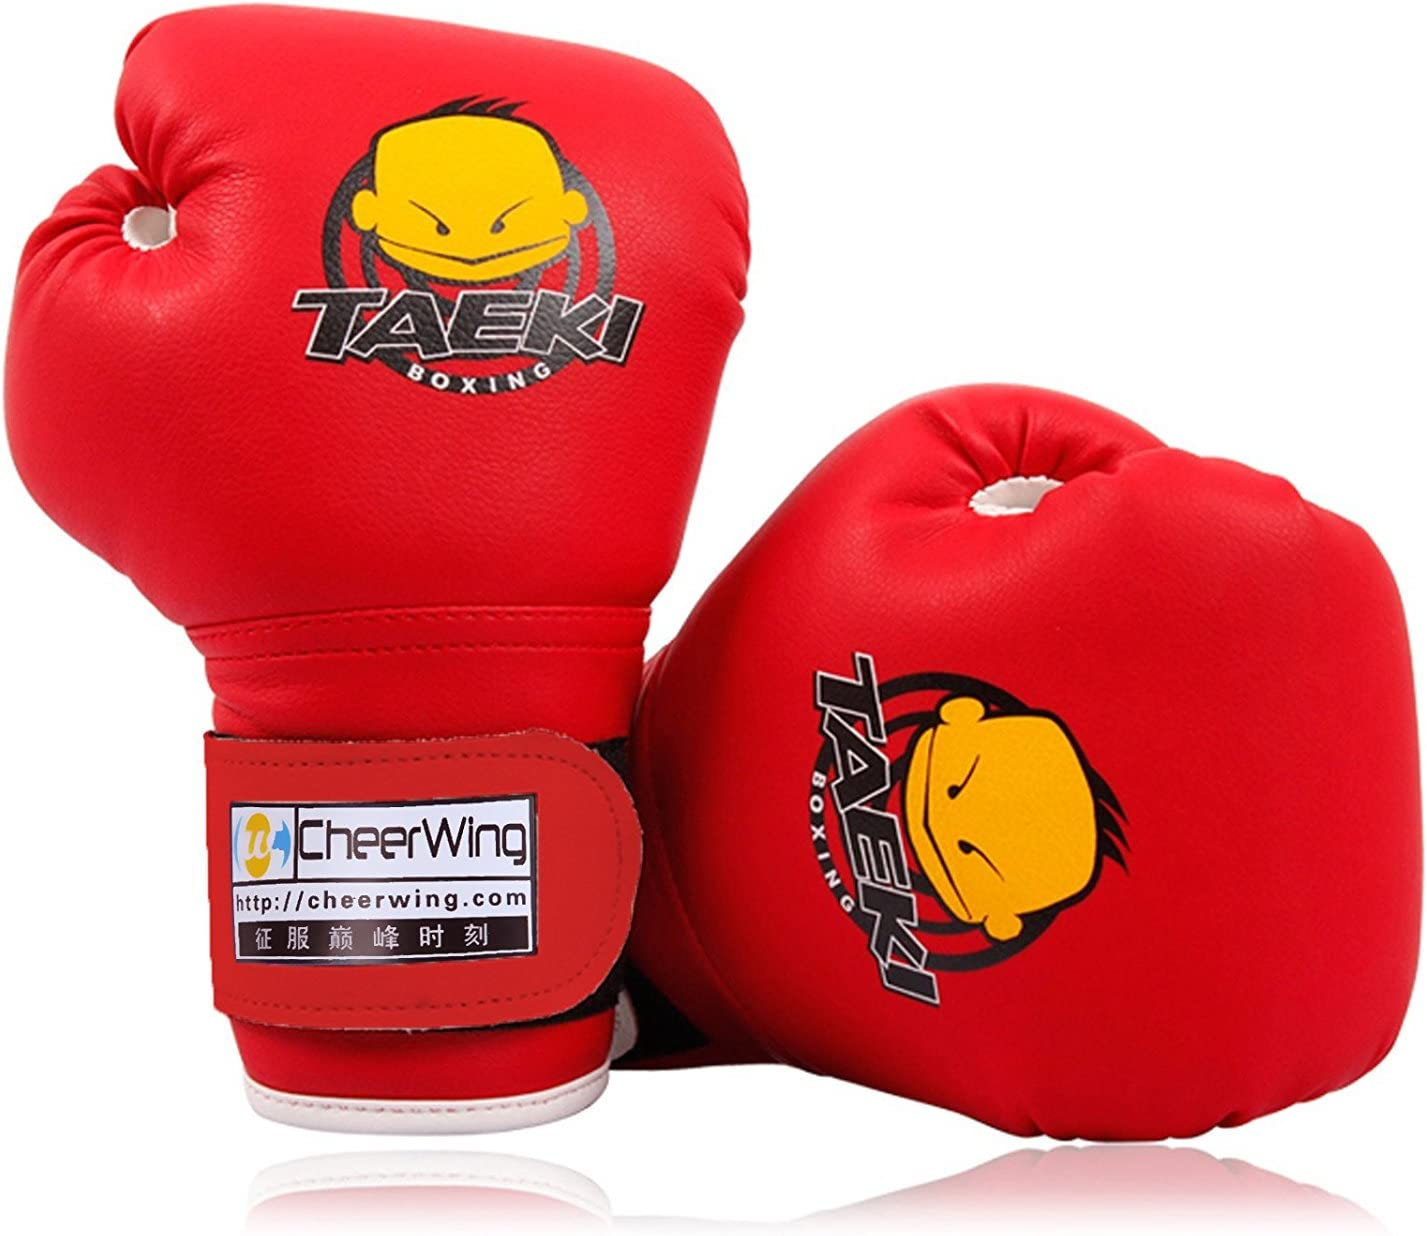 Cheerwing Kids Boxing Gloves 4oz Training Gloves for Youth and Toddler Punching Mitts Kickboxing Muay Thai Gloves : Sports & Outdoors